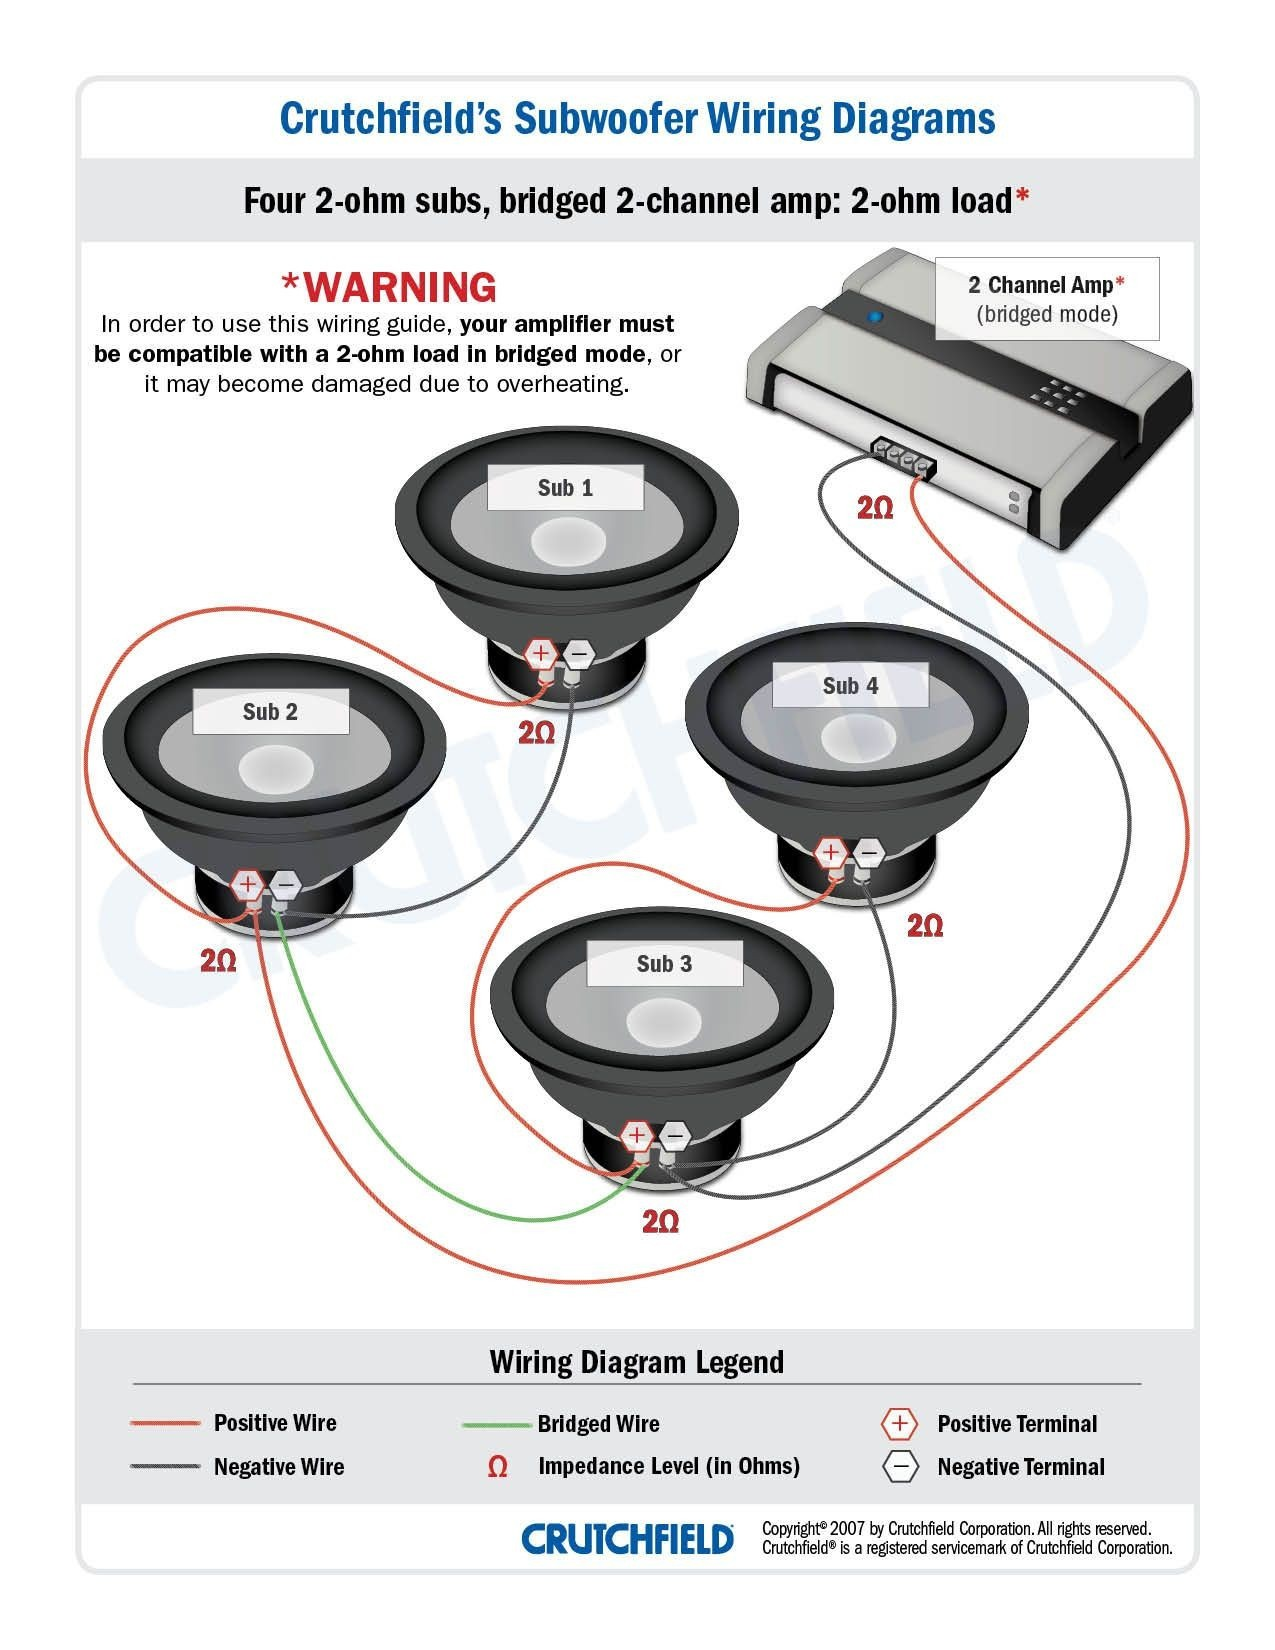 Mono Amplifier Wiring Diagram New Wiring Diagram for Car Amplifier and Subwoofer